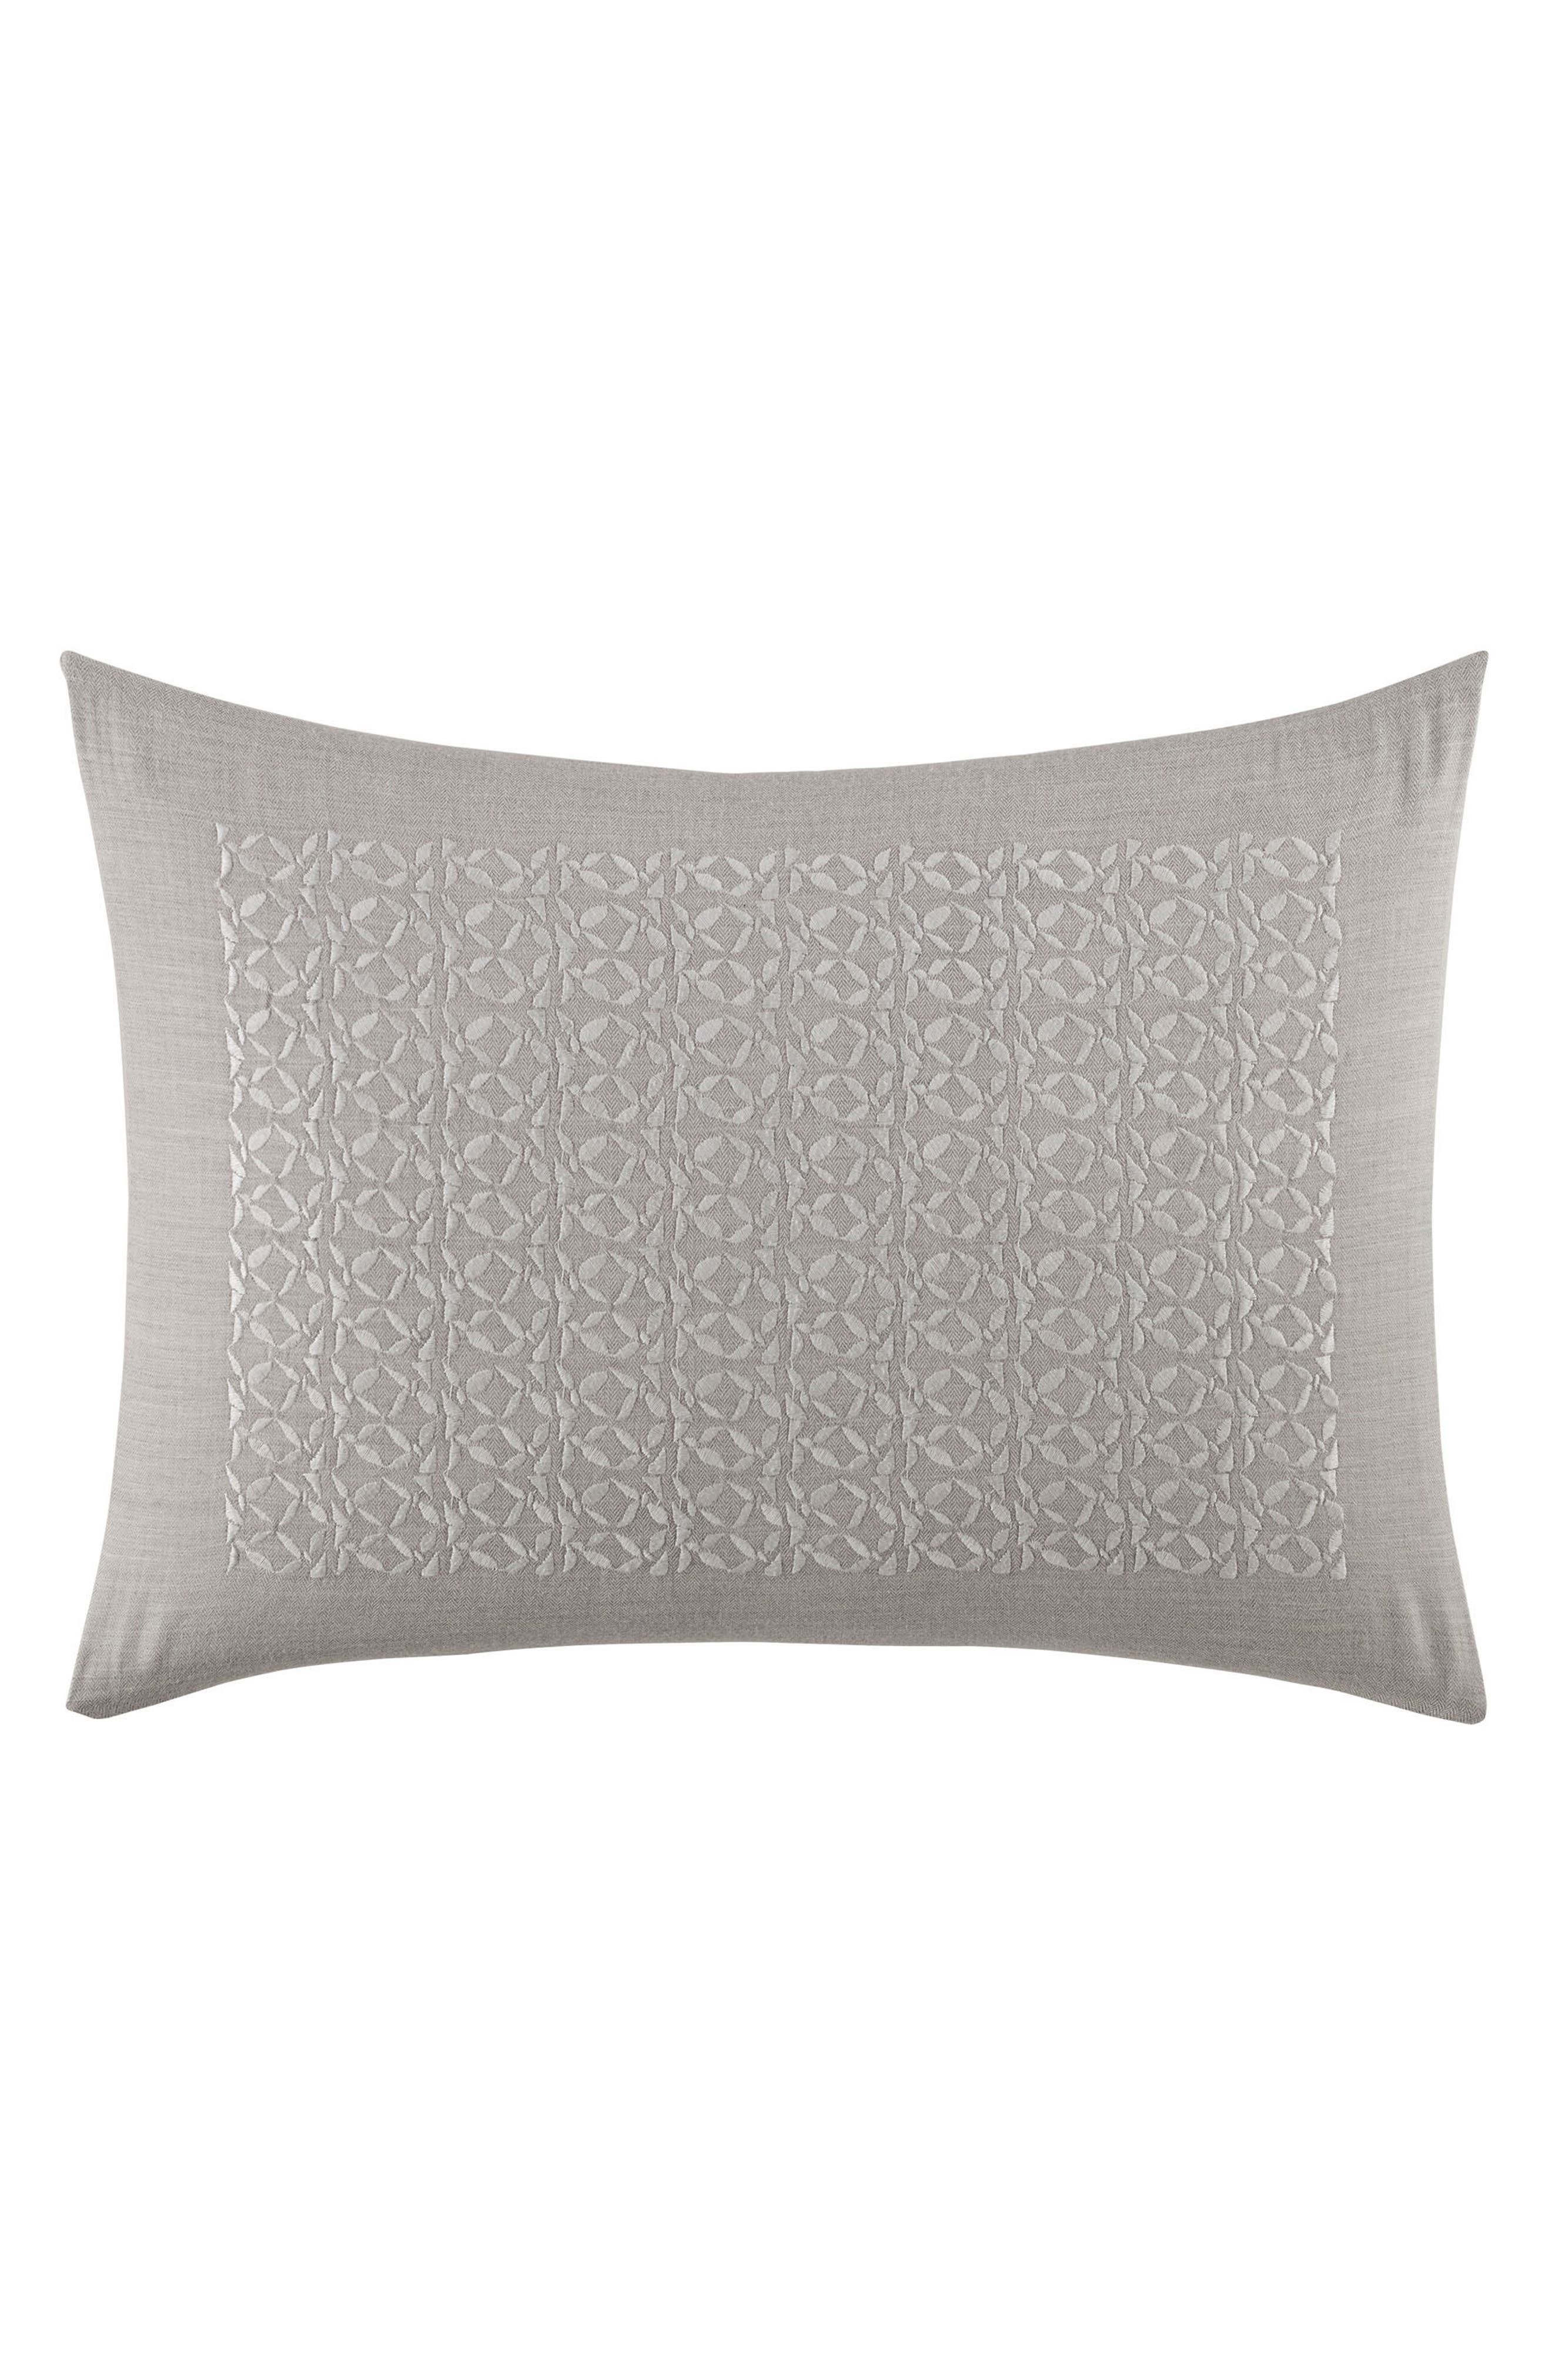 Veiled Bouquet Breakfast Accent Pillow,                         Main,                         color, 020